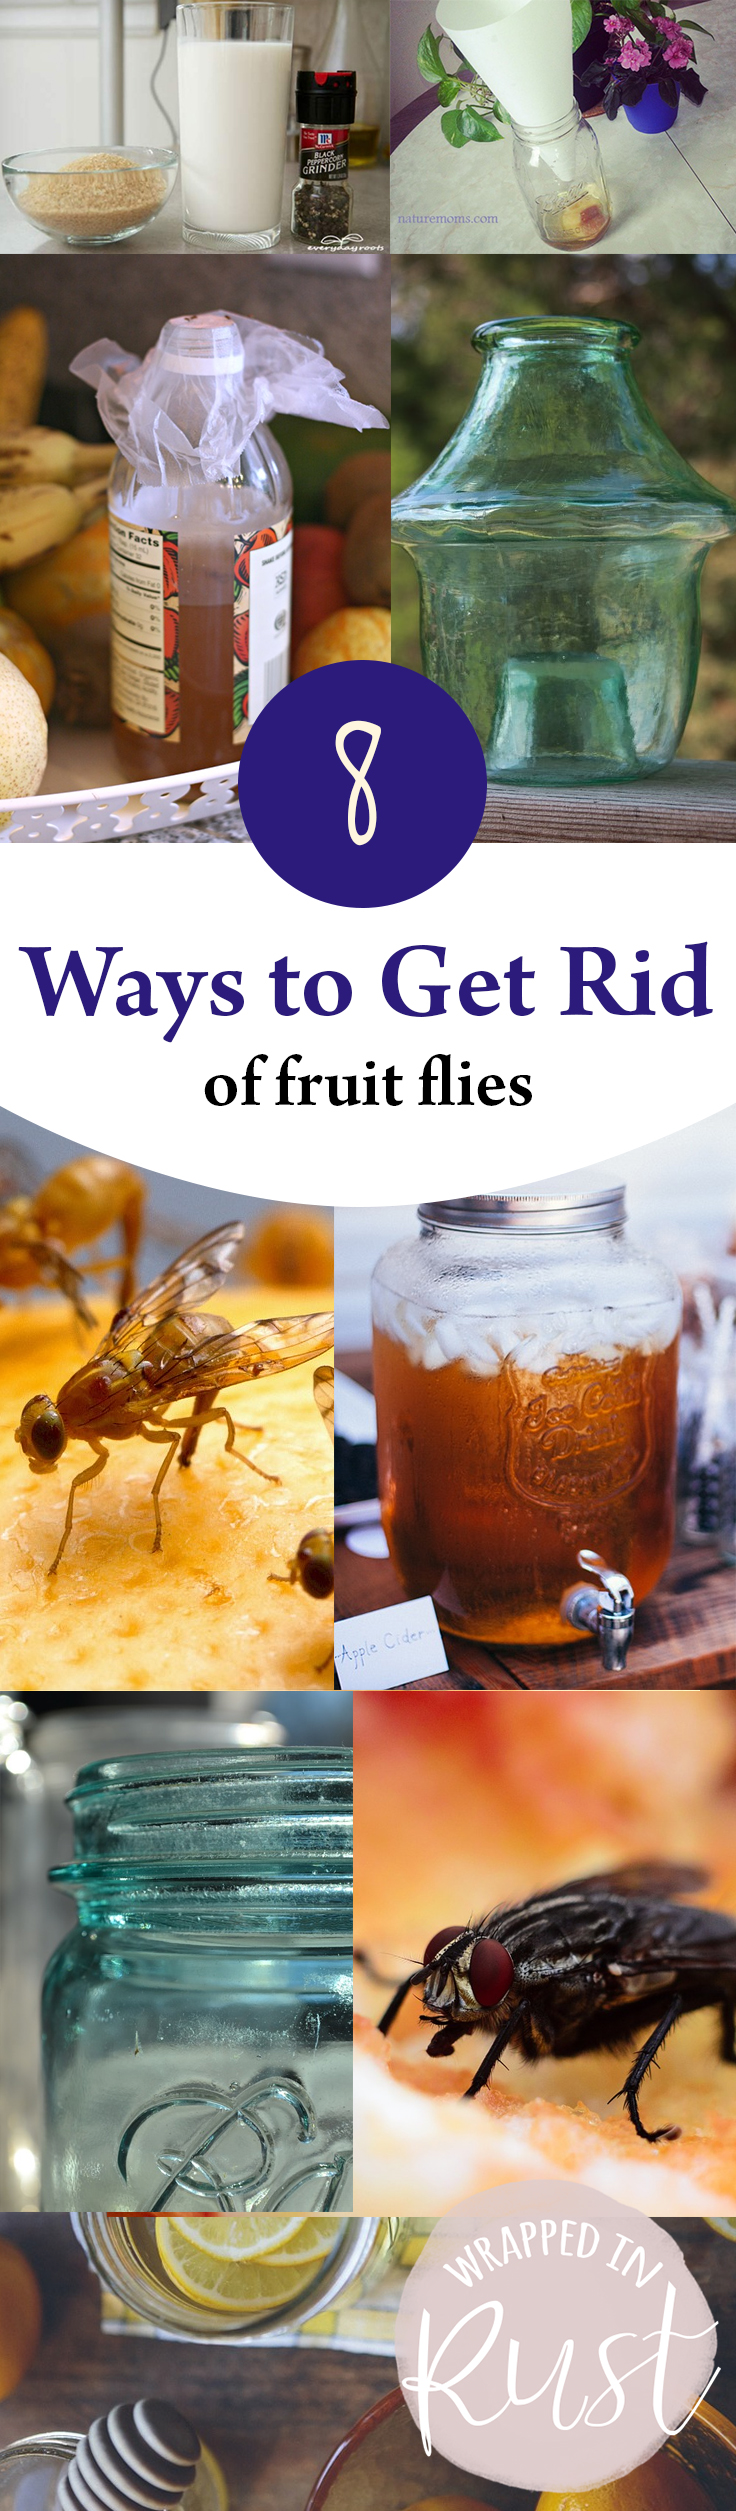 8 ways to get rid of fruit flies wrapped in rust. Black Bedroom Furniture Sets. Home Design Ideas